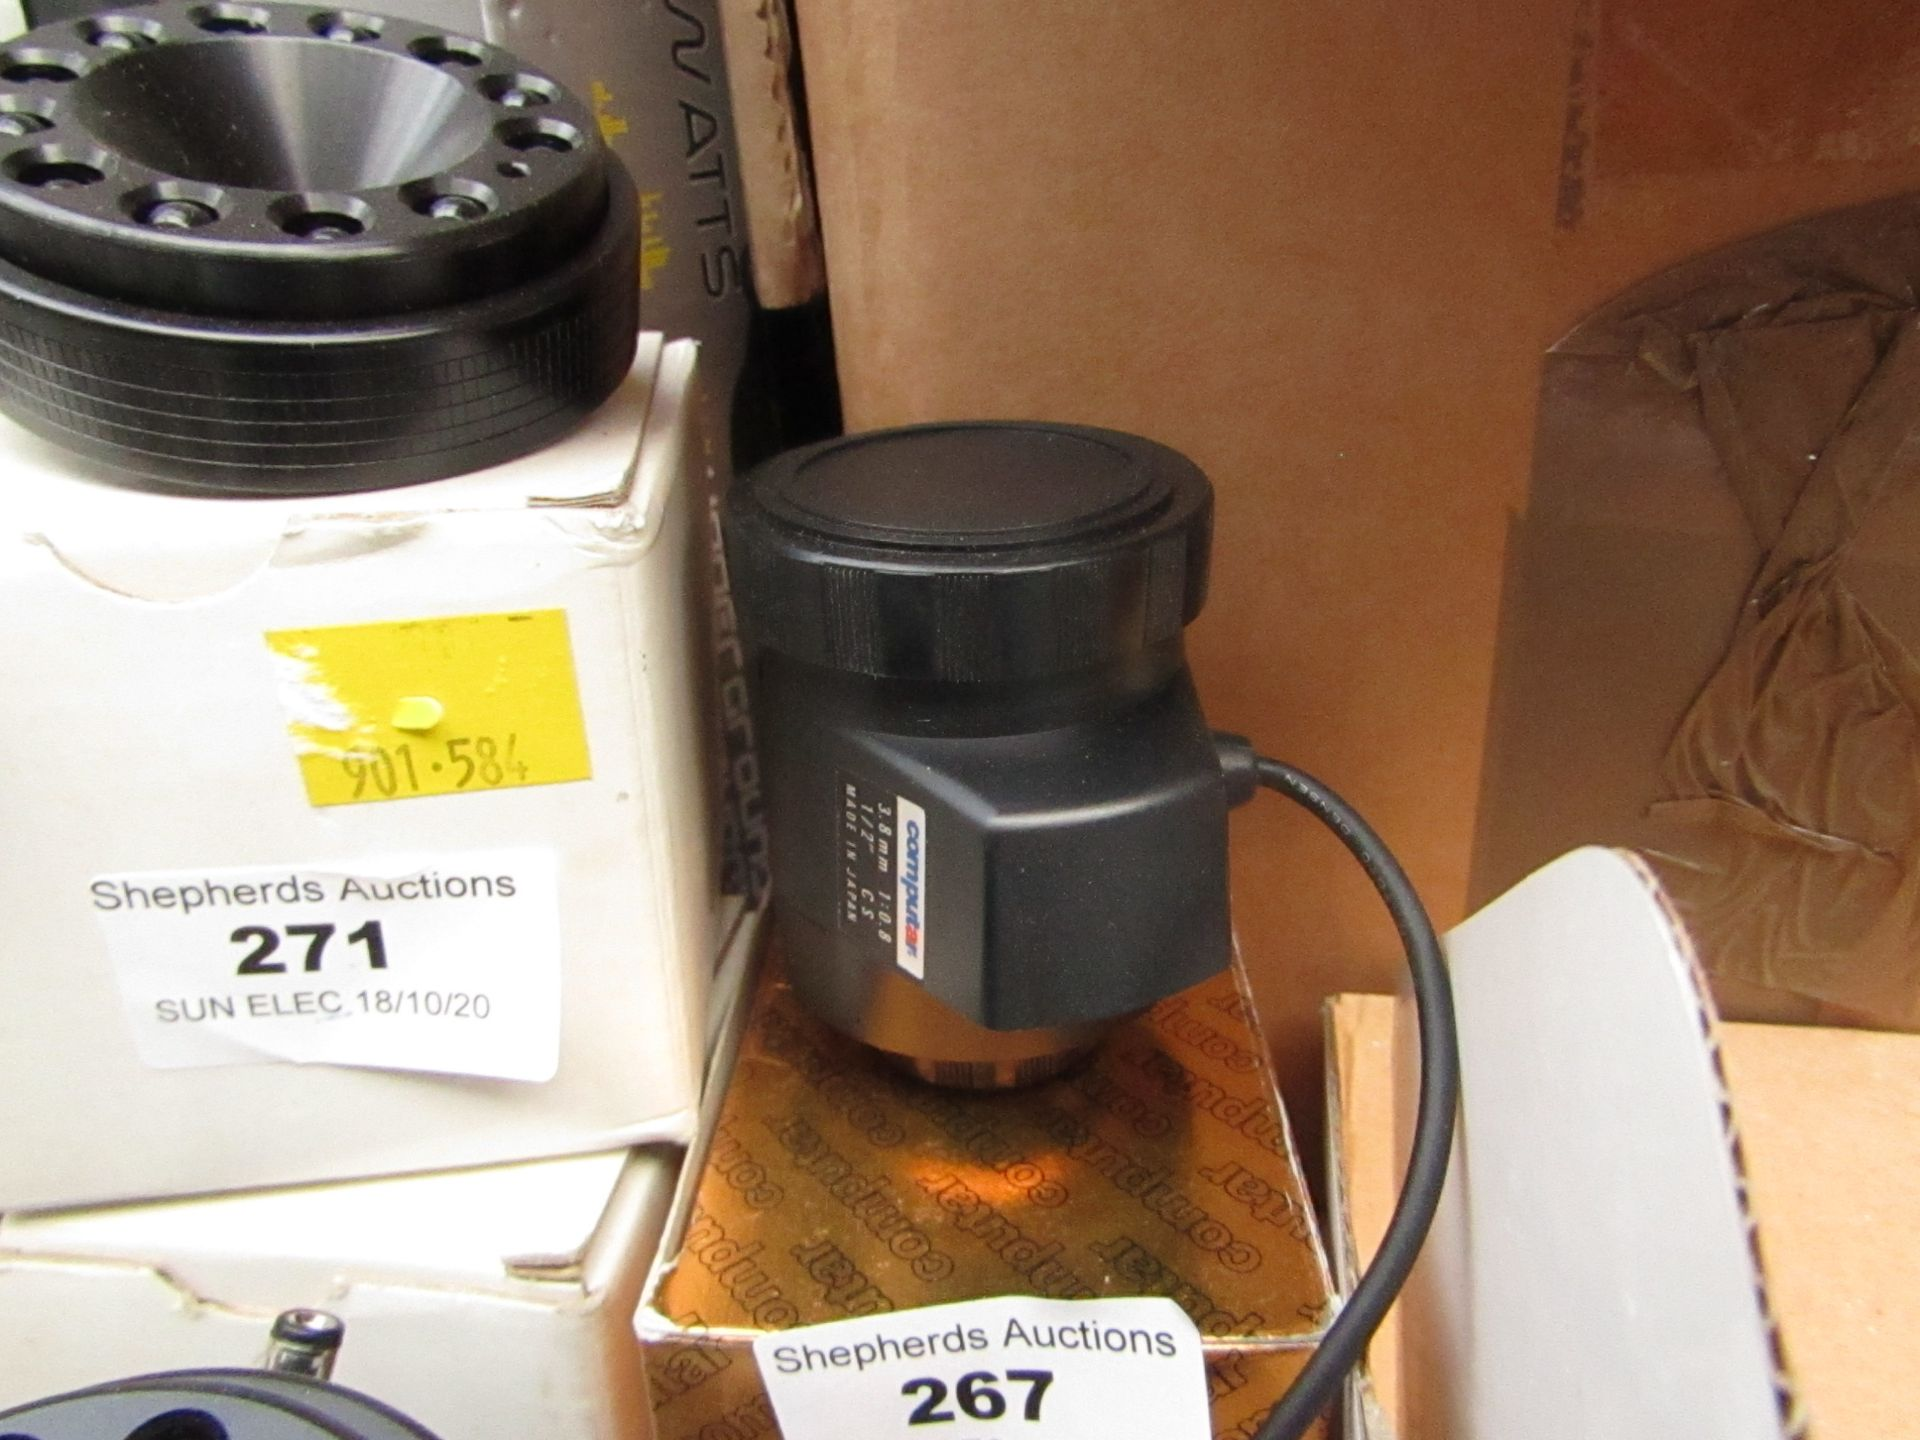 3.8mm CCTV universal lens, unchecked and boxed.